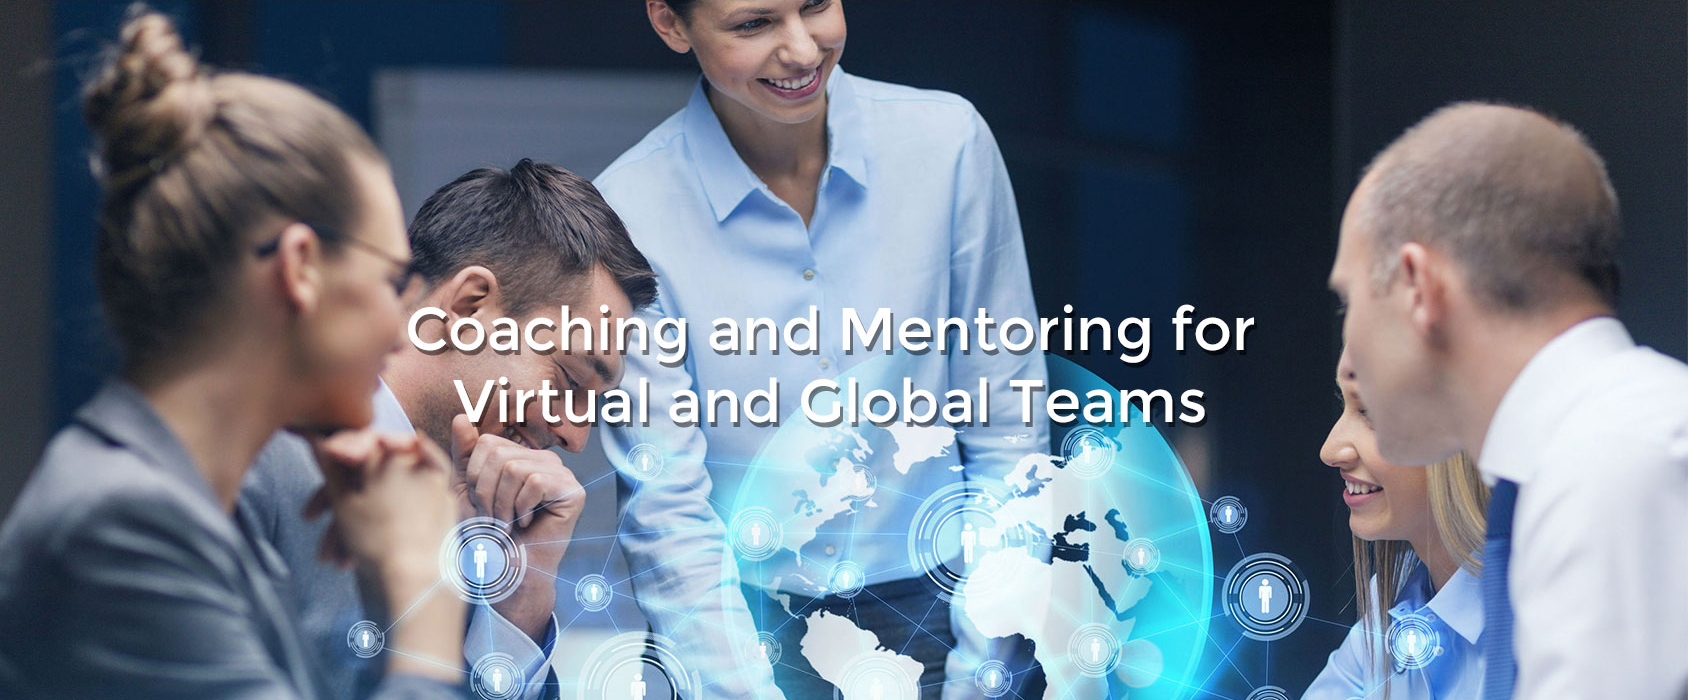 Coaching and Mentoring for Virtual and Global Teams